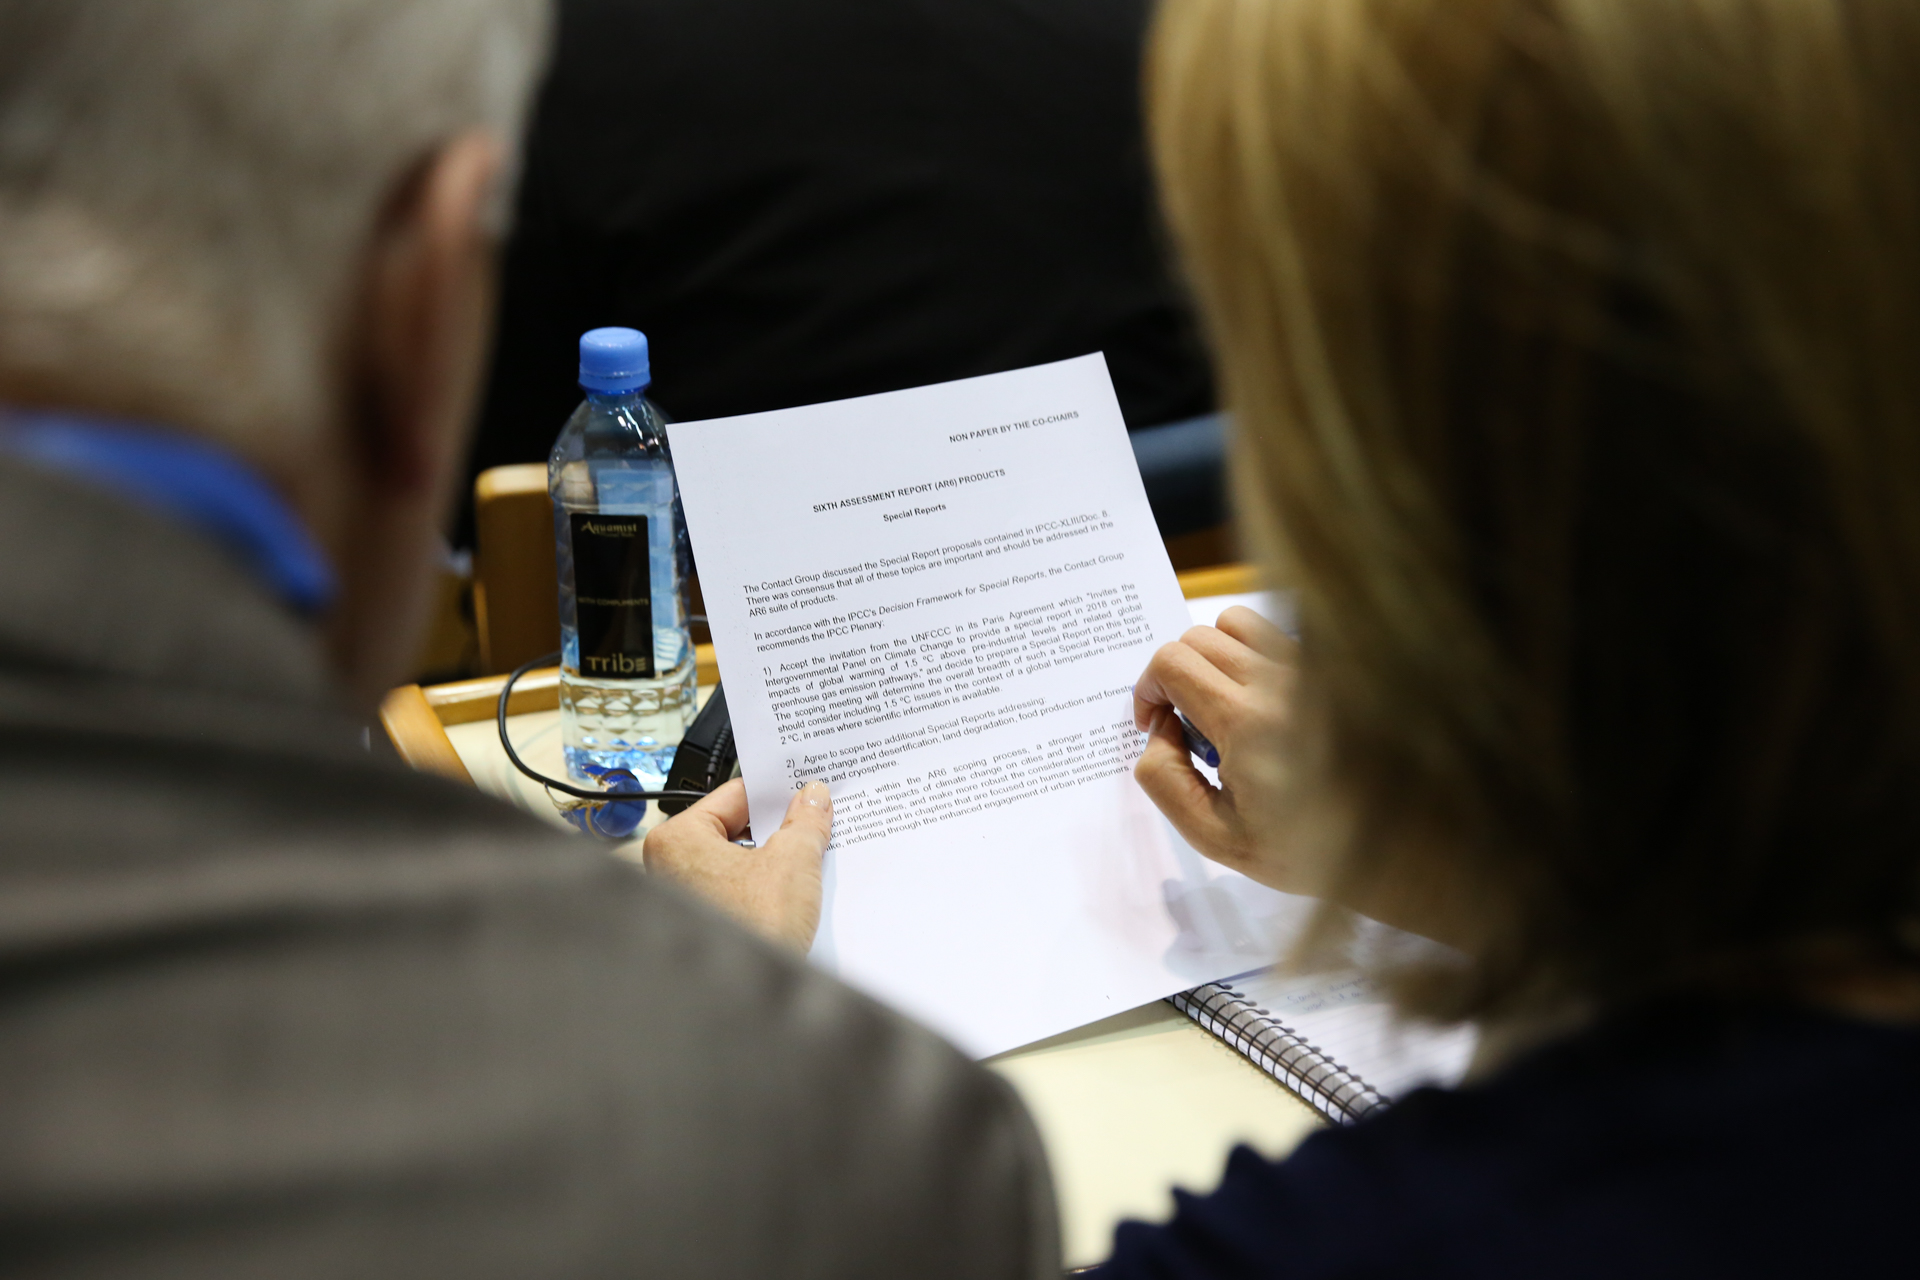 A photo looking over the shoulders of two delegates as they review text